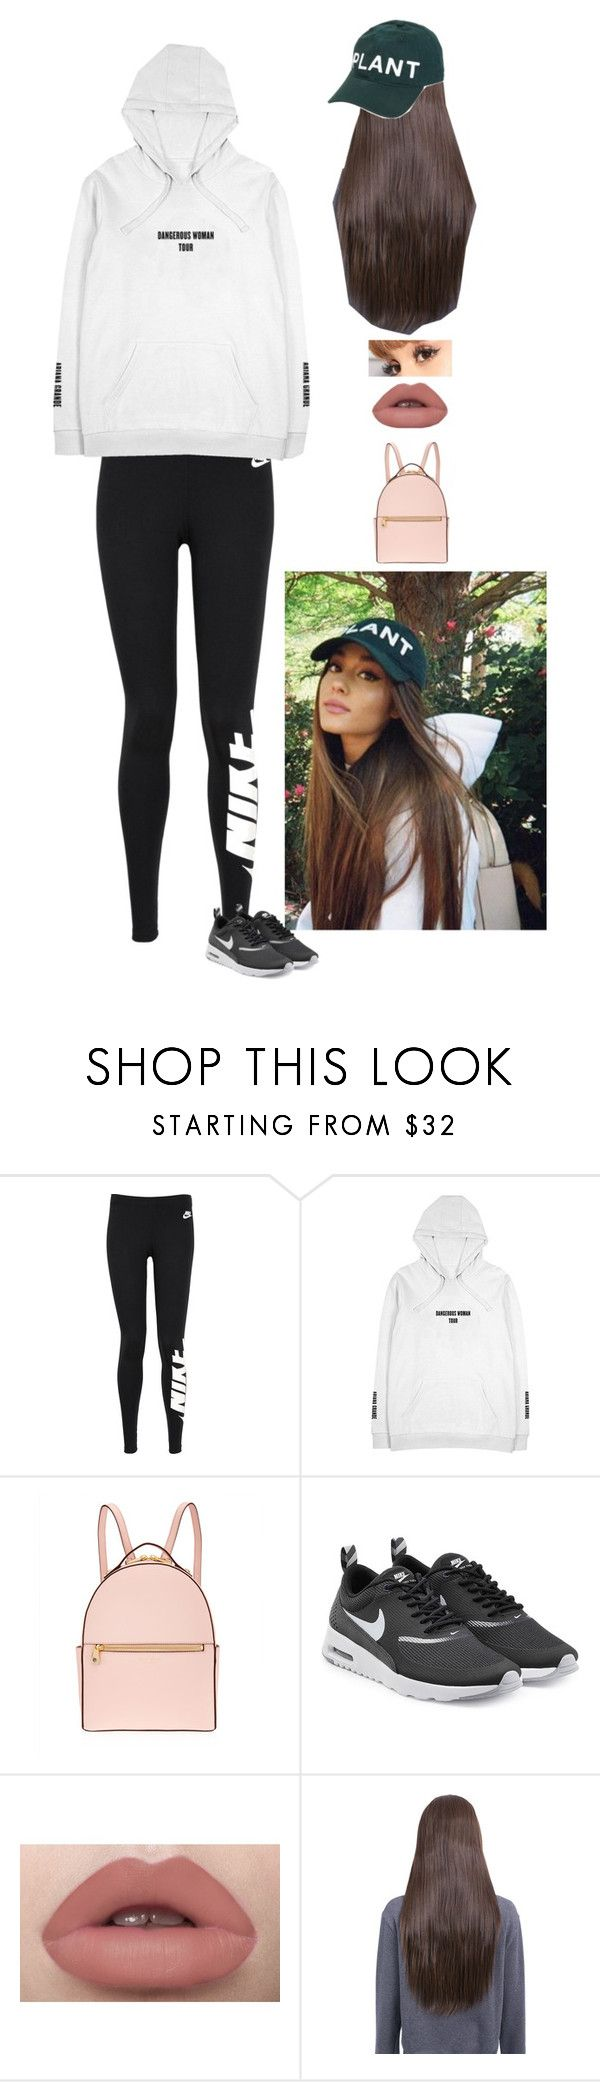 """Ariana Grande Inspired Outfit"" by moonlightbae264 ❤ liked on Polyvore featuring NIKE, Henri Bendel and ArianaGrande"